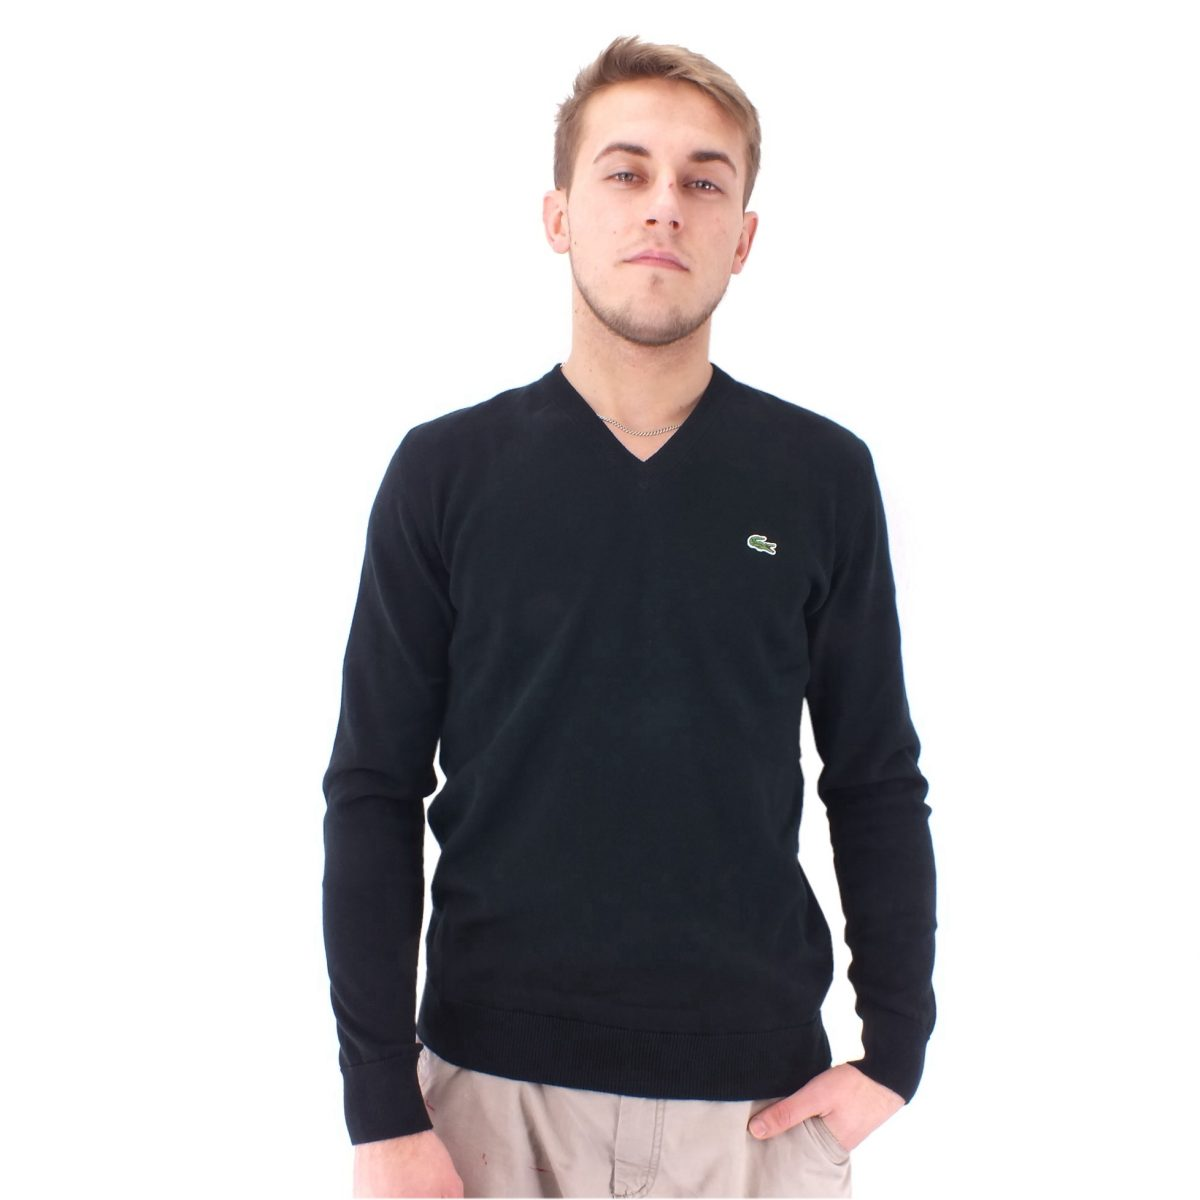 lacoste v neck sweater pullover sweatshirt herren. Black Bedroom Furniture Sets. Home Design Ideas